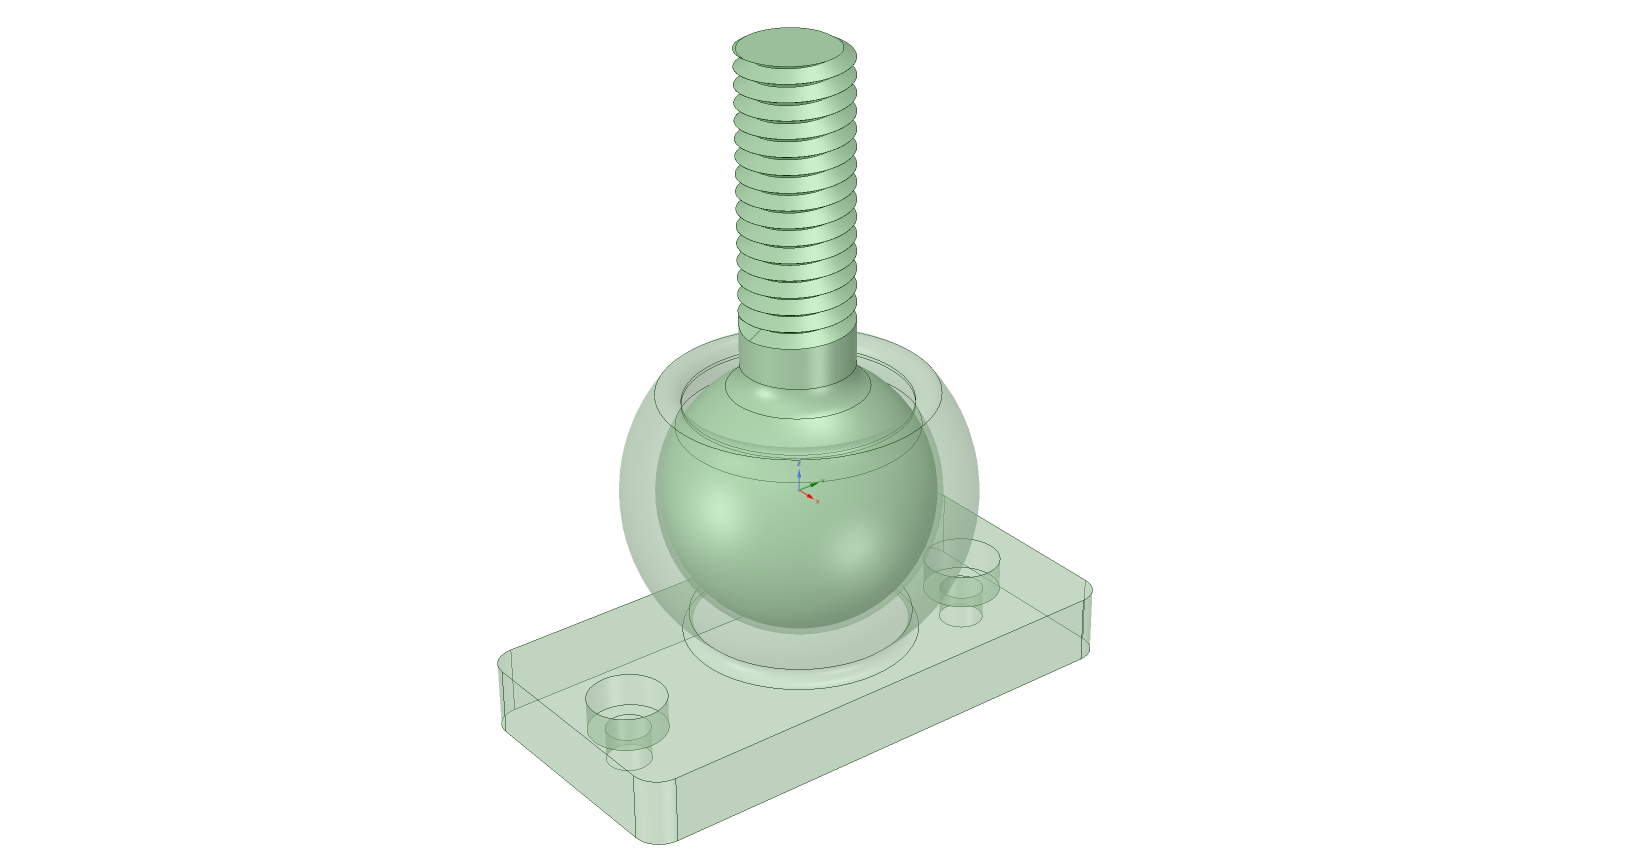 Ball And Socket Joint All In One Print Test Object For